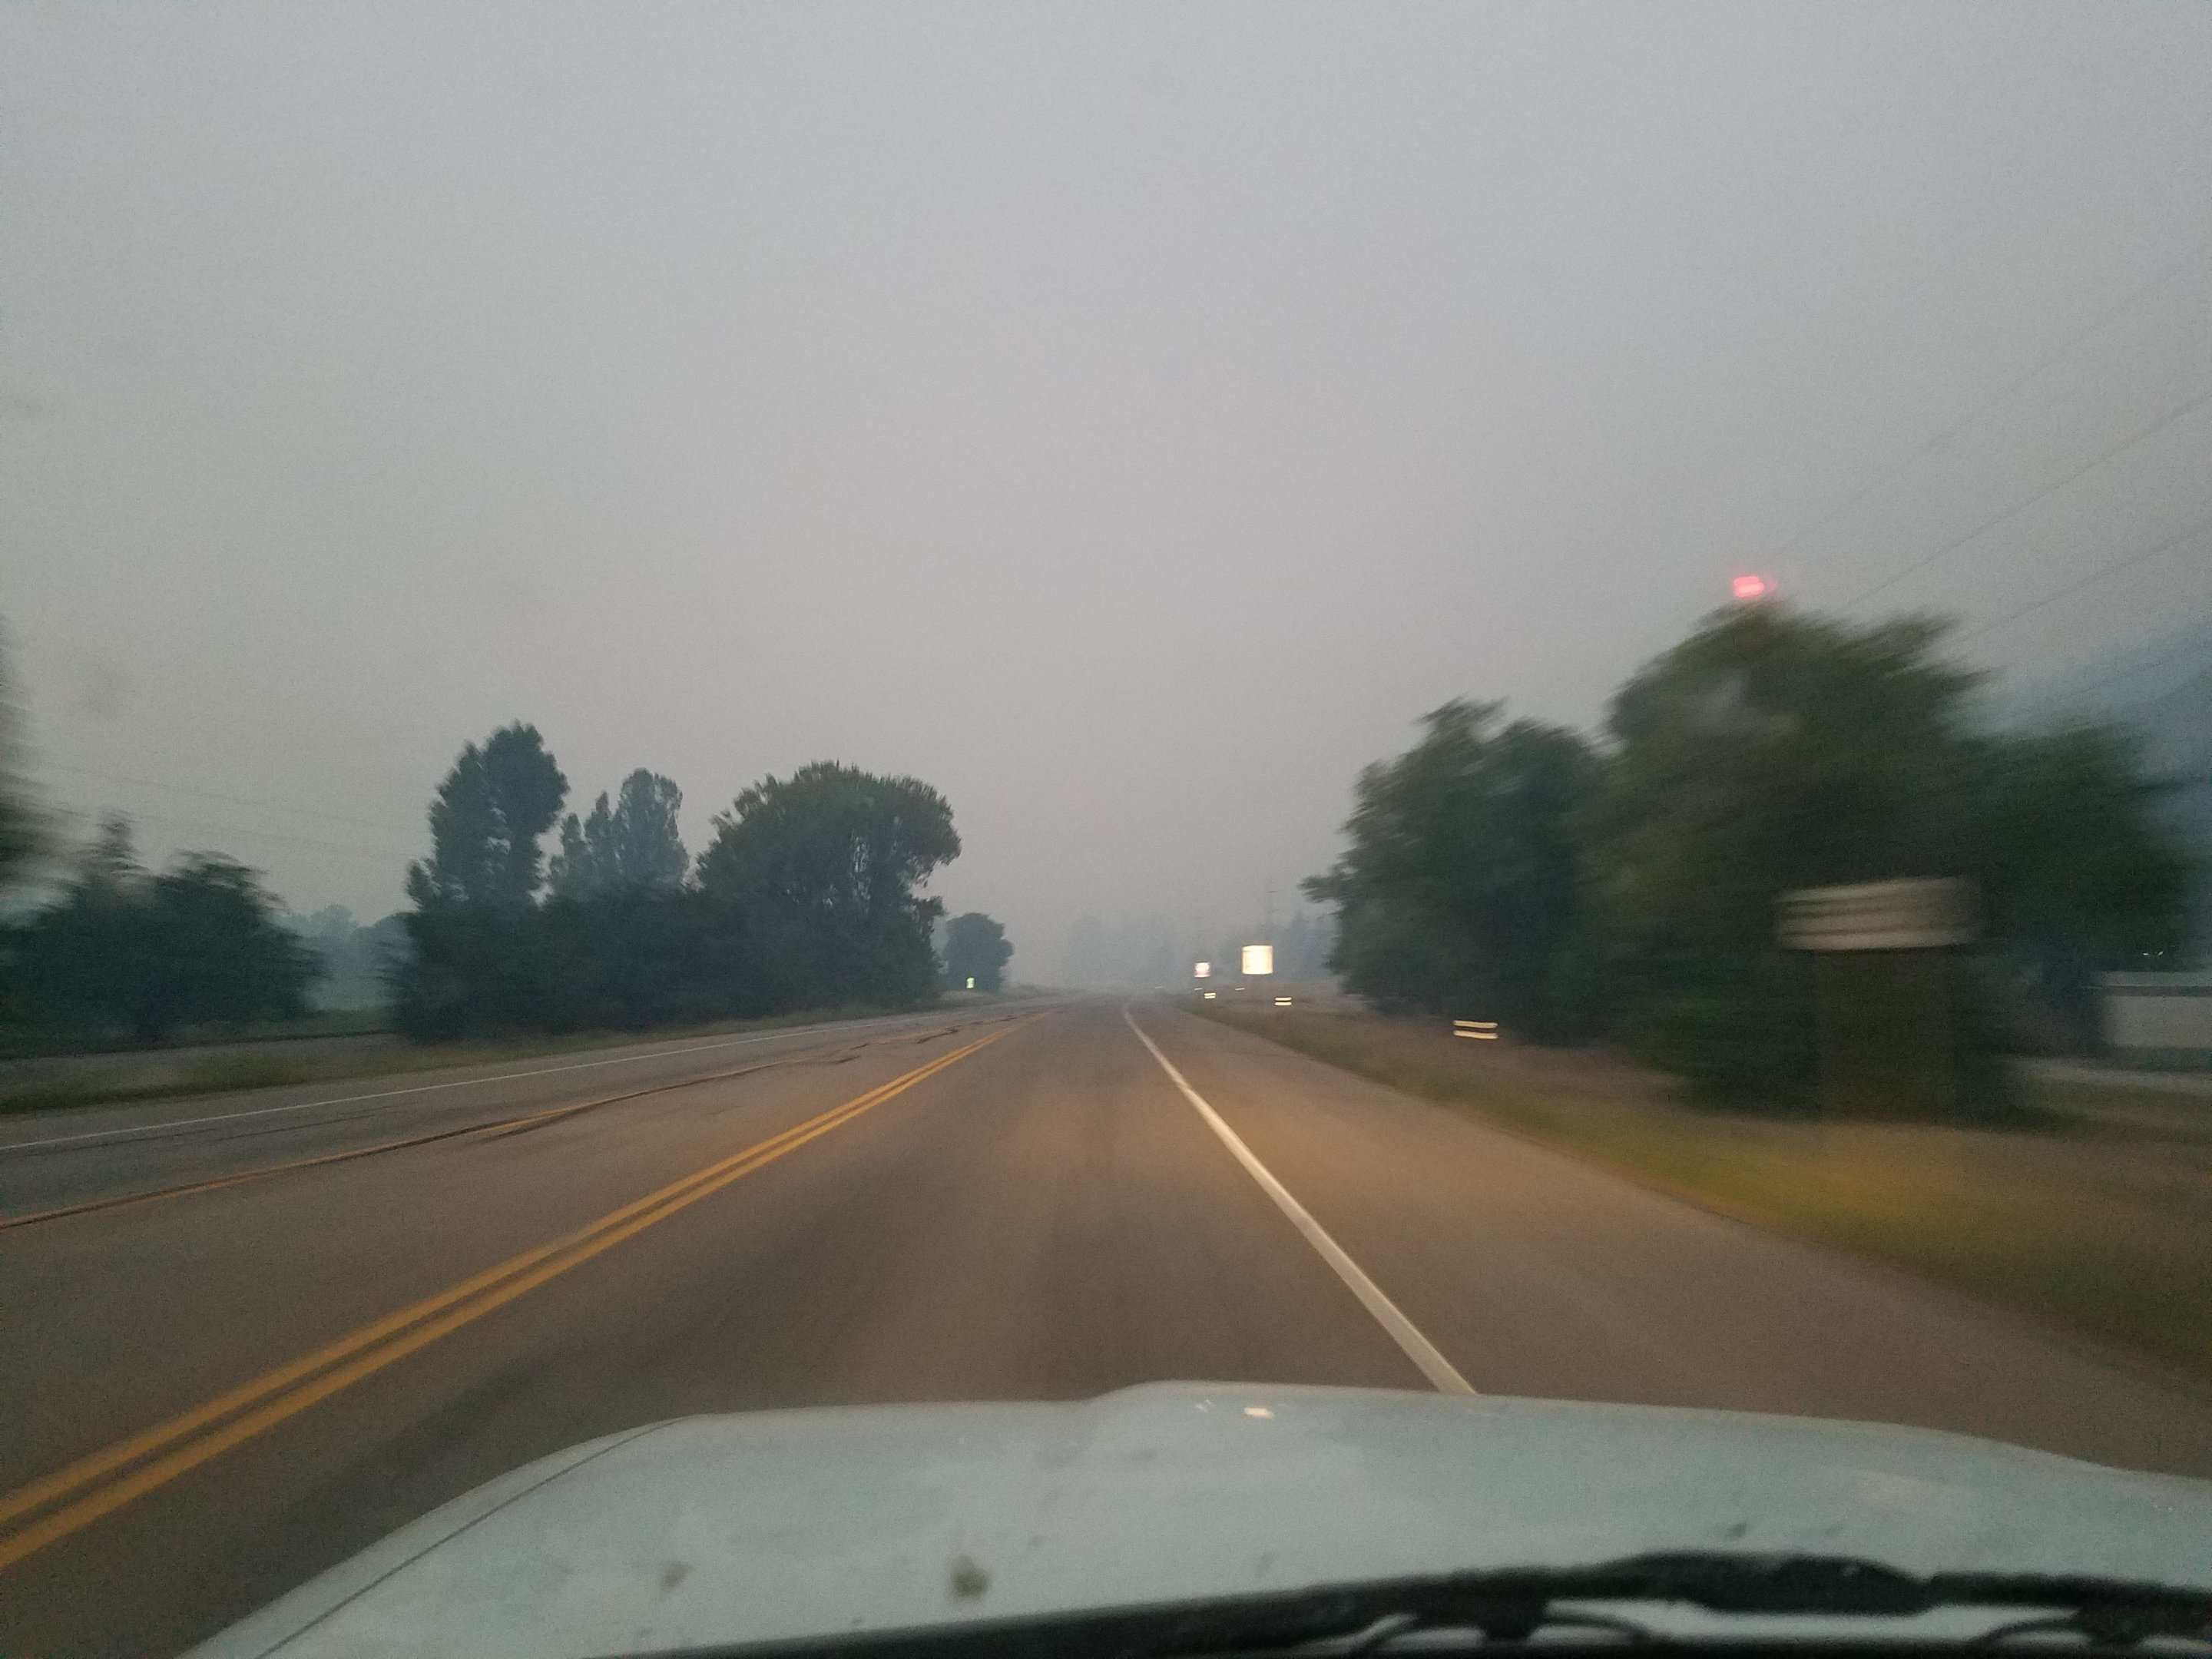 20180609_053452-jpg.43984_Firefighting in Colorado_Off the Road_Squat the Planet_6:42 PM